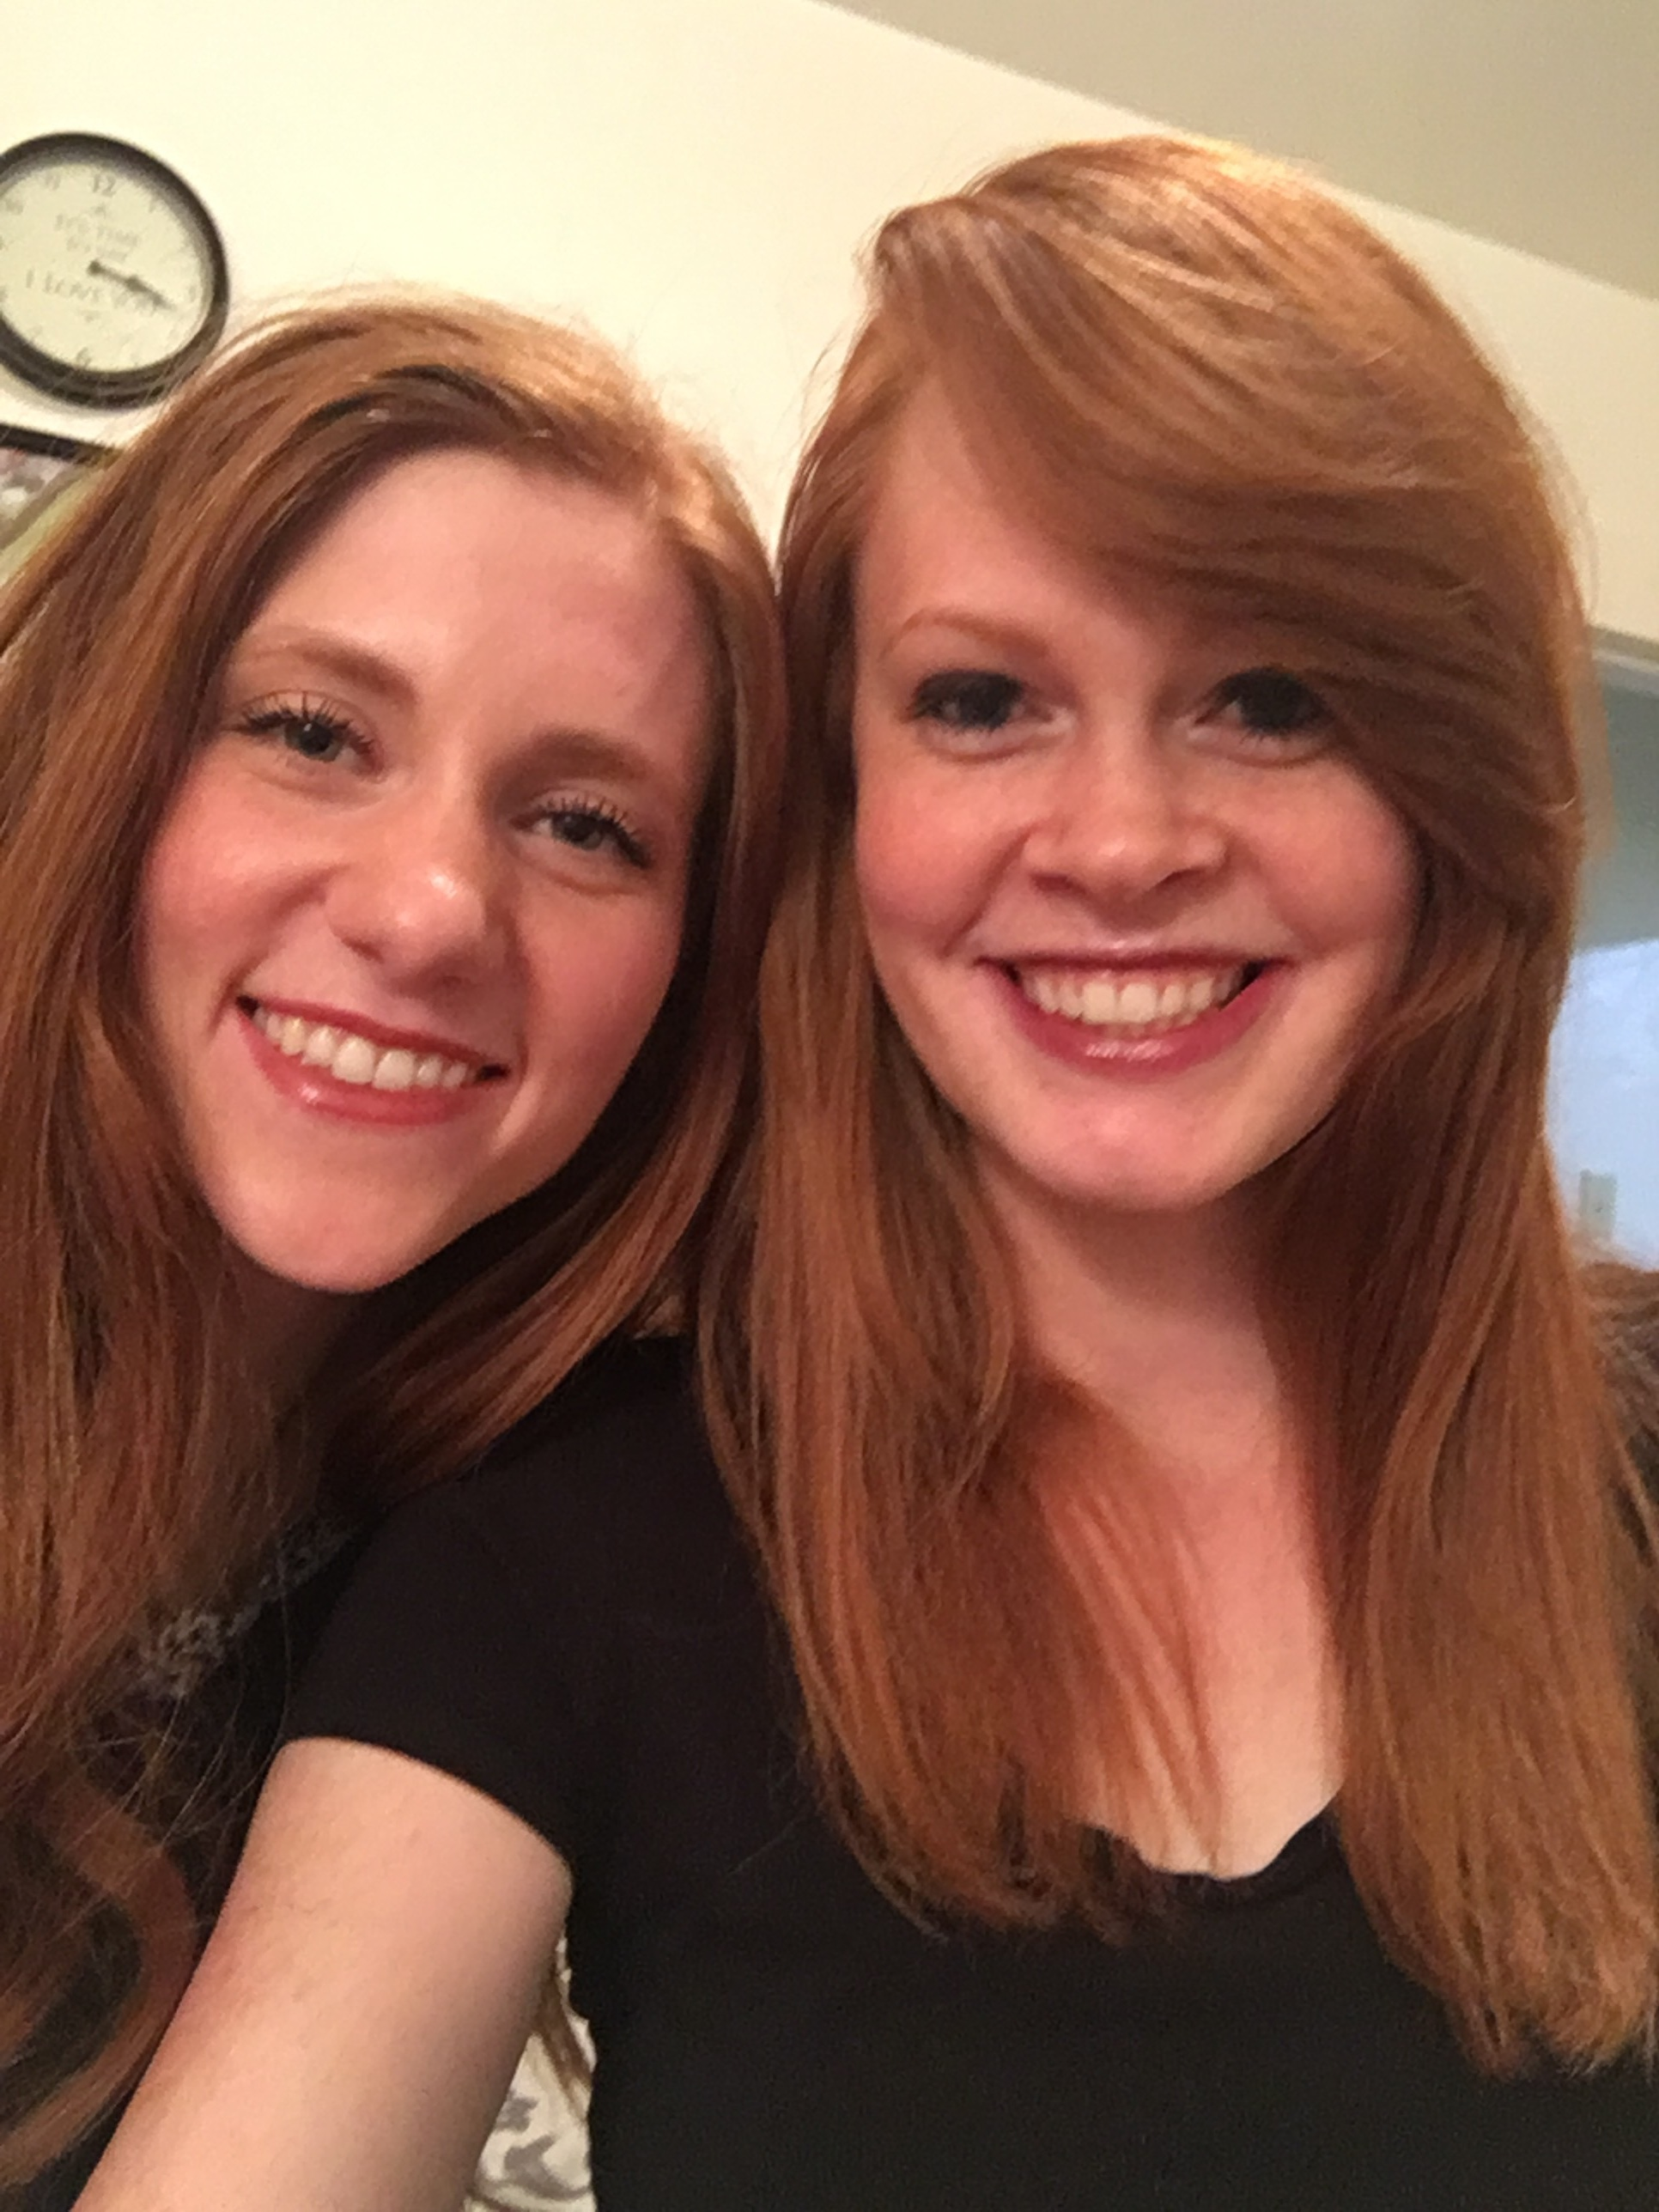 Hayley! My red headed, soul sista twin :)